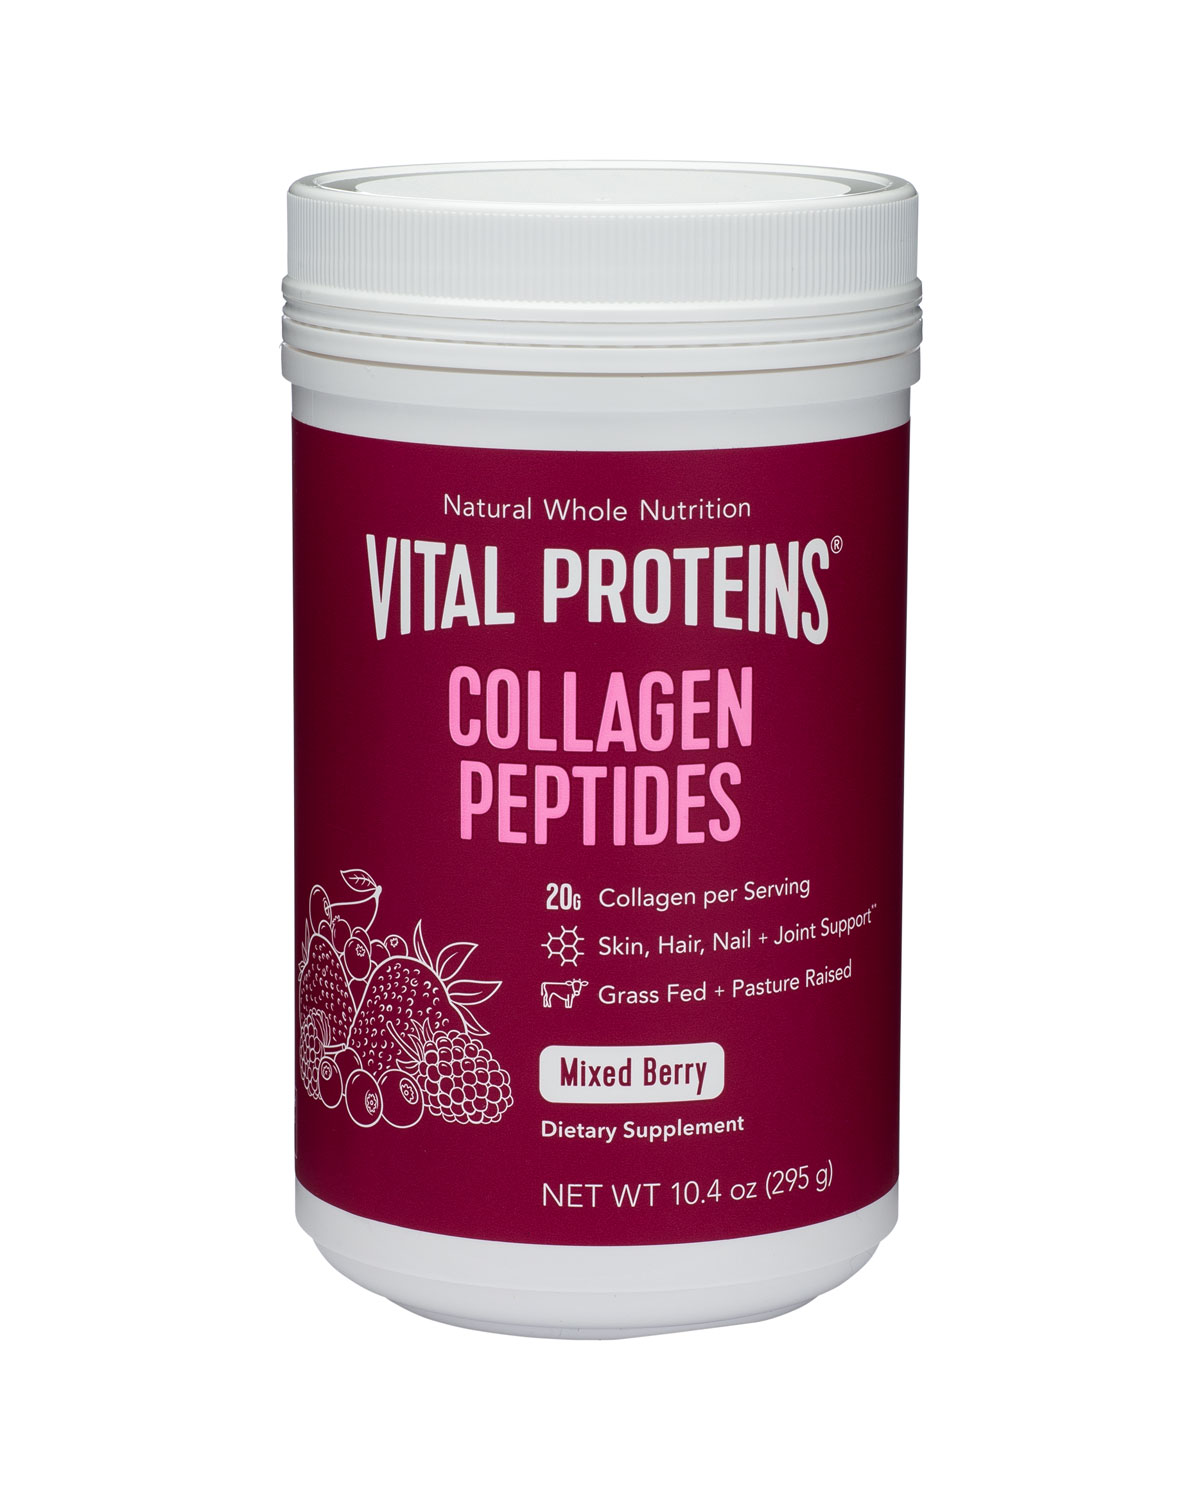 VITAL PROTEINS Collagen Peptides (Mixed Berry)